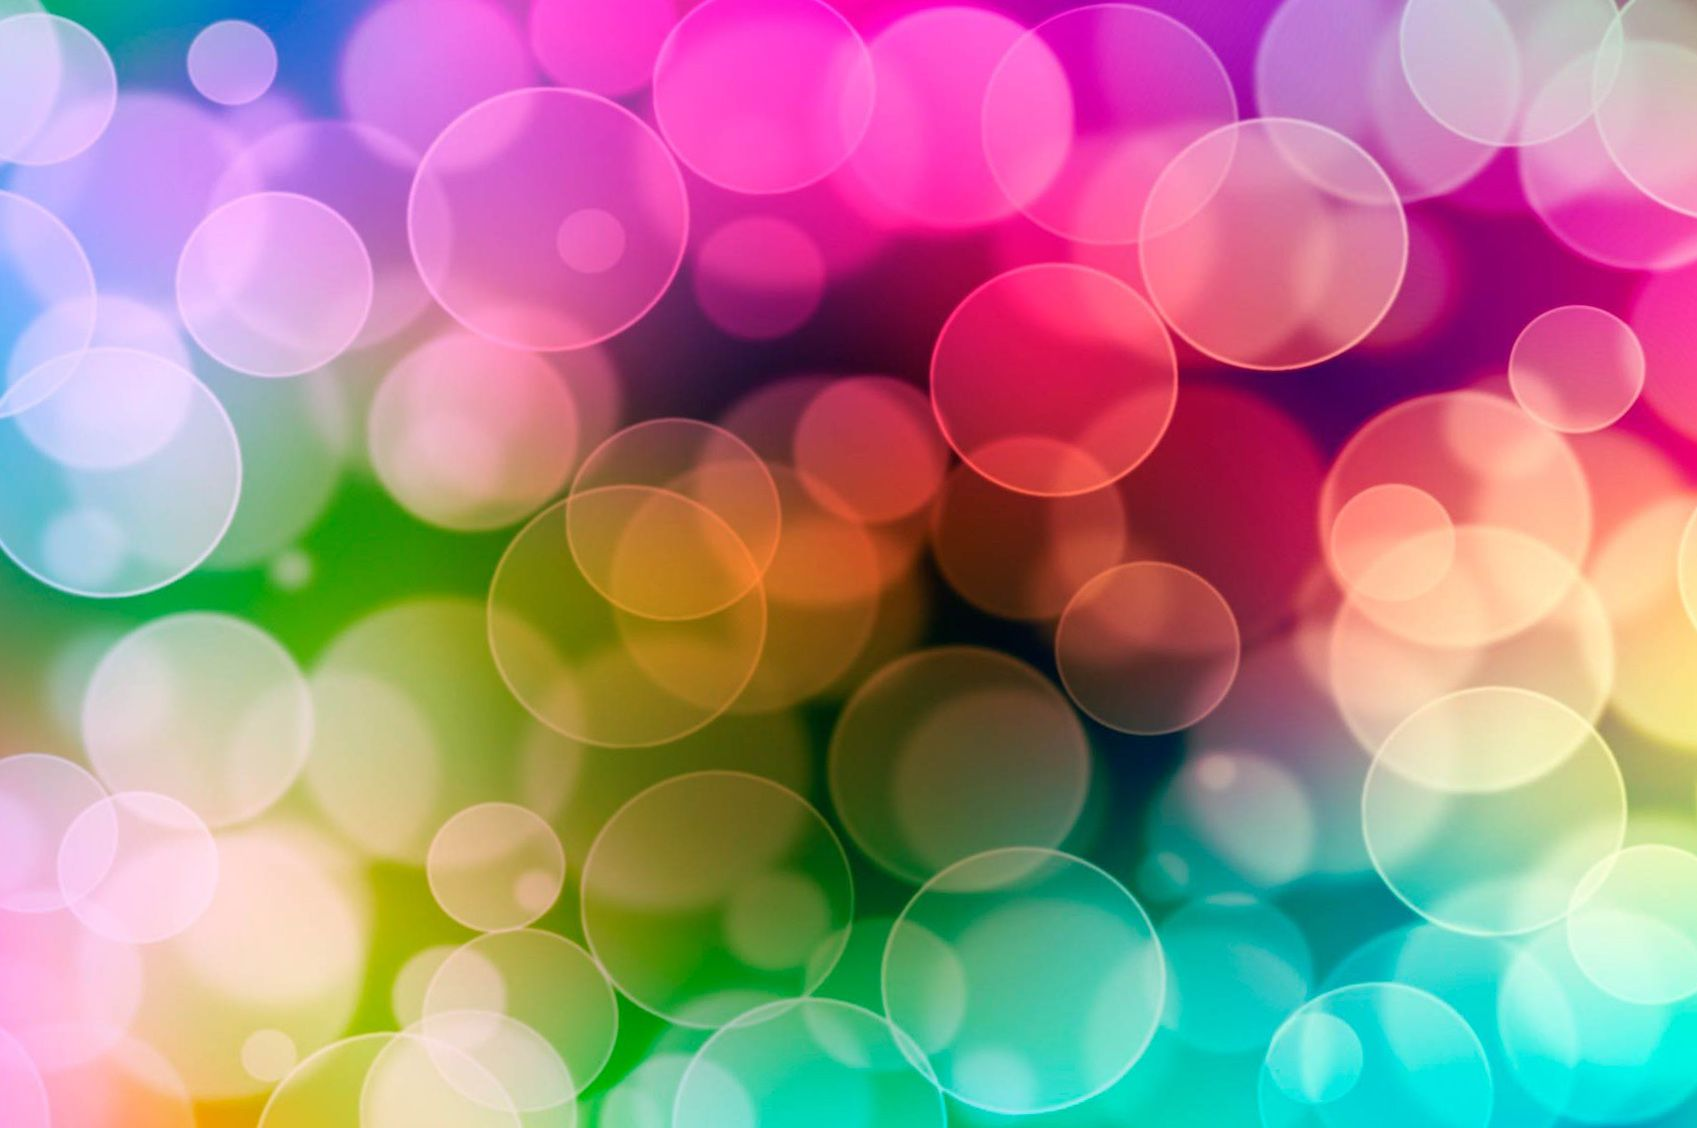 Hd Abstract Wallpapers Colorful Backgrounds Art Lovely